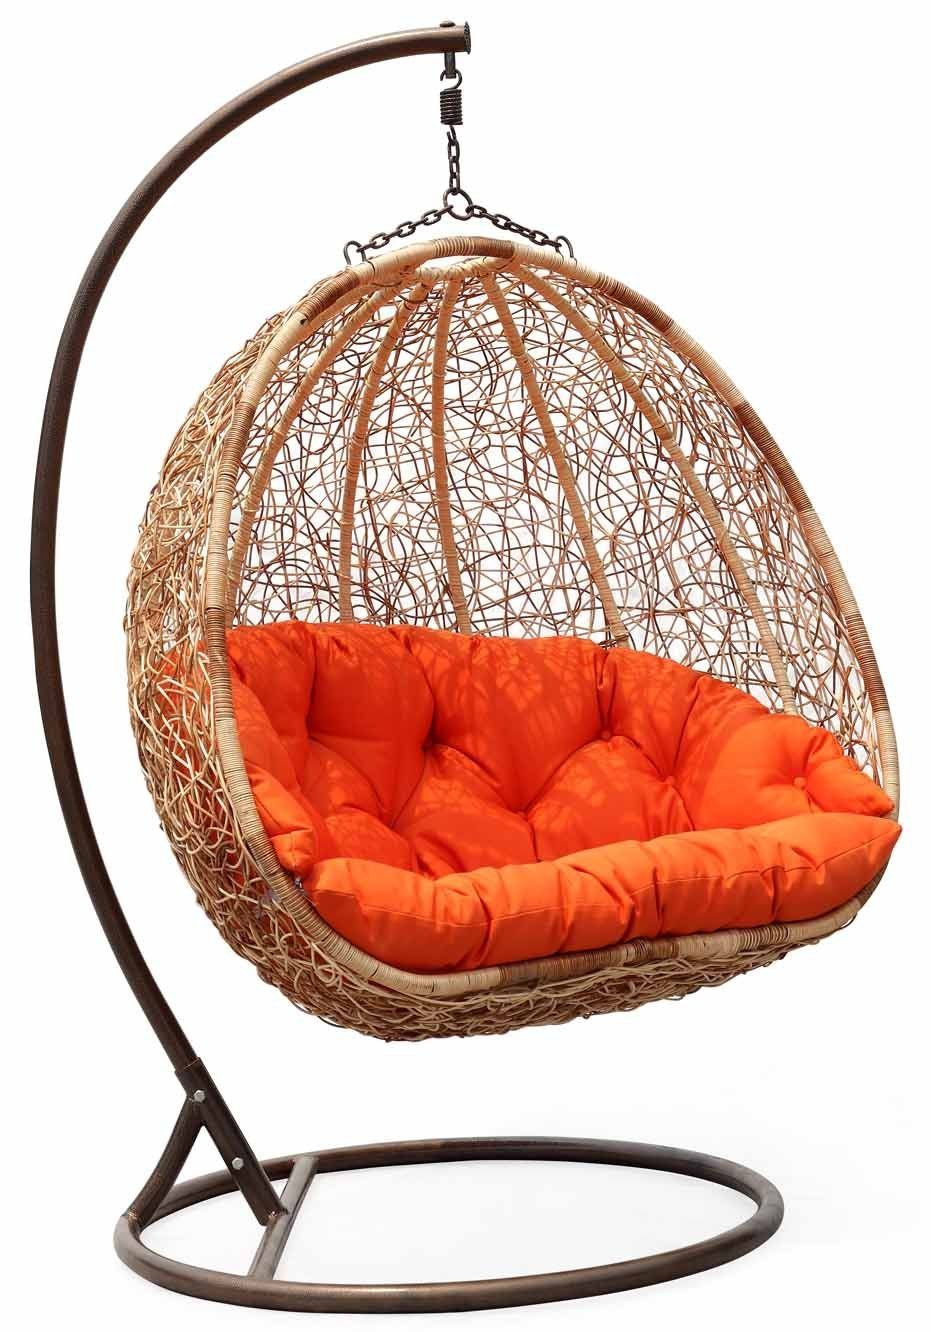 hanging chairs with stand for bedrooms lazy boy price wicker swing chair orange cushion | pretty things home pinterest good books ...